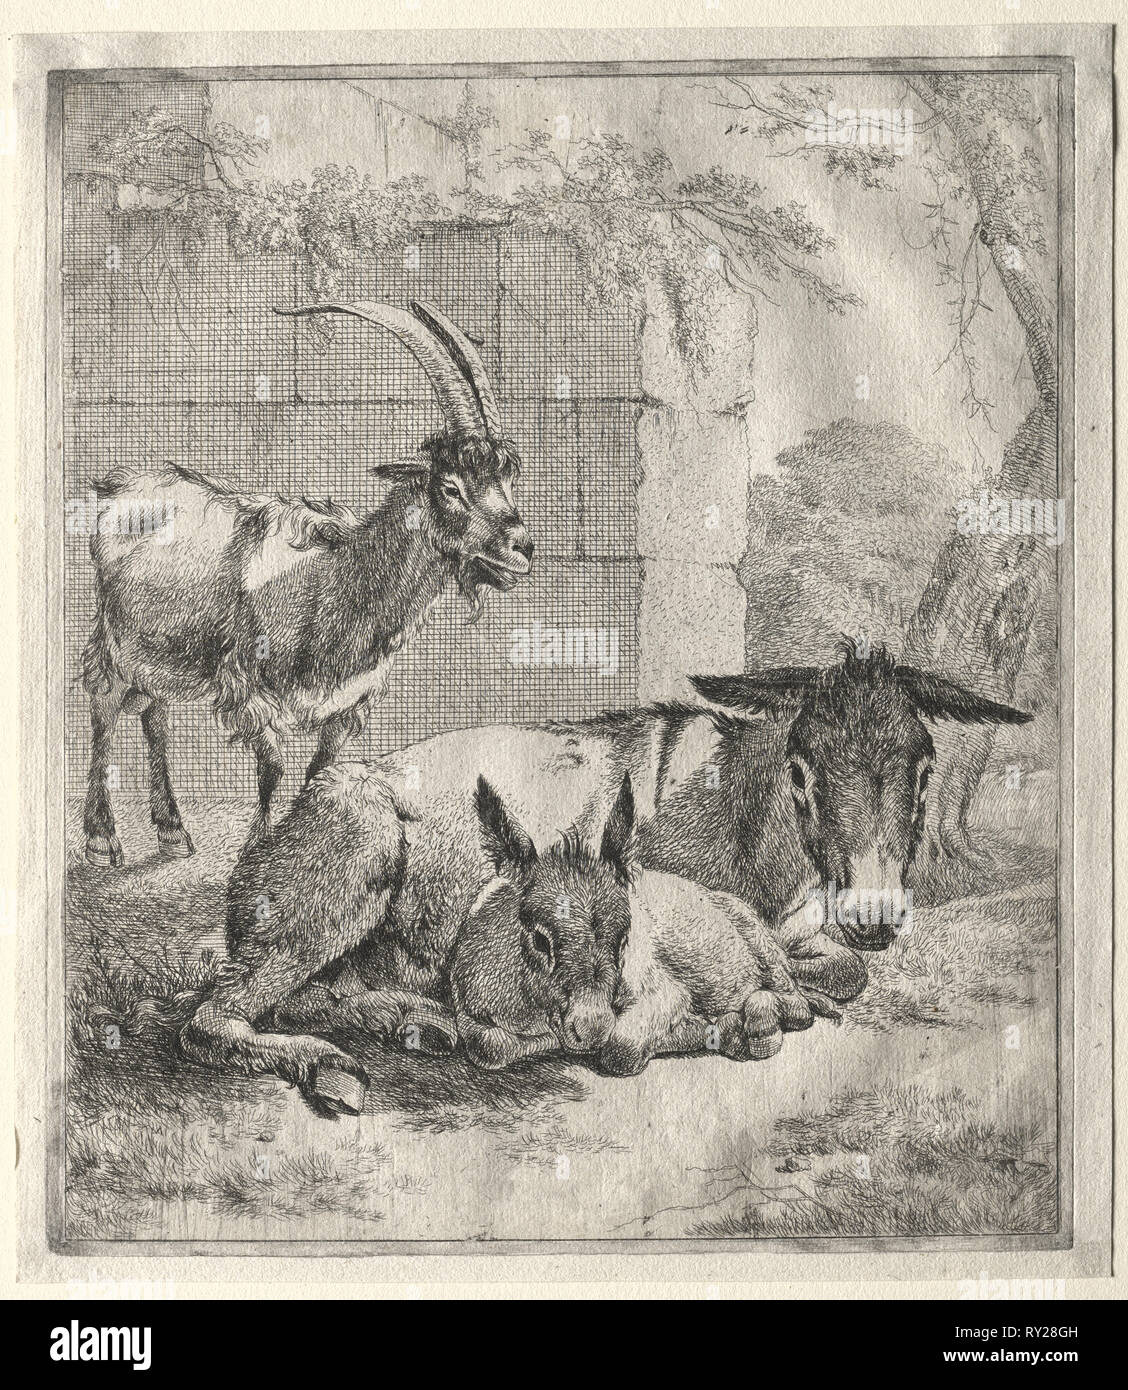 Goat and Donkeys. Johann Heinrich Roos (German, 1631-1685). Etching Stock Photo